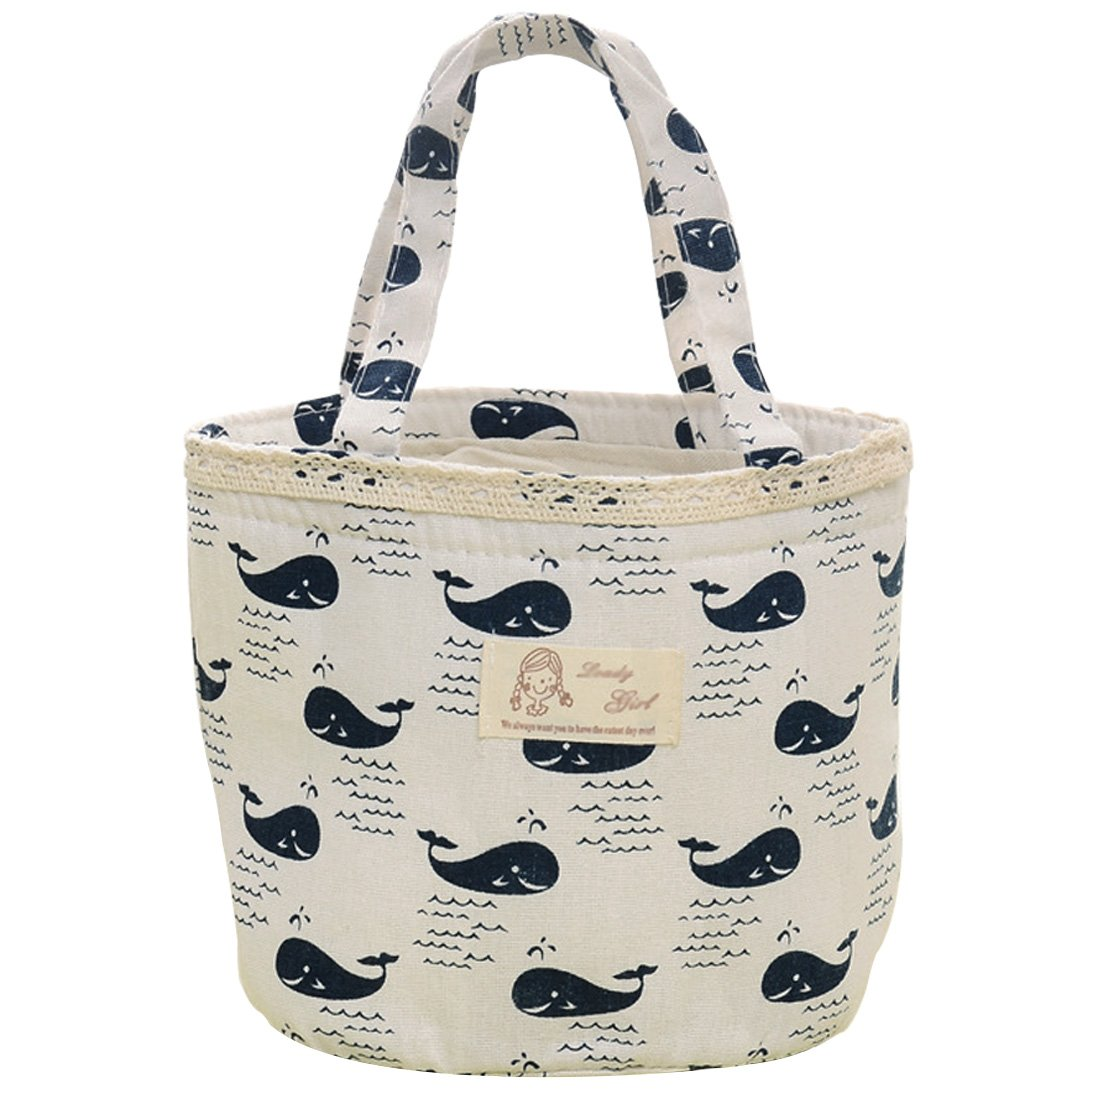 Oyachic Thermal Lunch Bag Insulated Tote Leakproof Drawstring Bag with Foil Liner for Office, School and Picnic (Whale white)